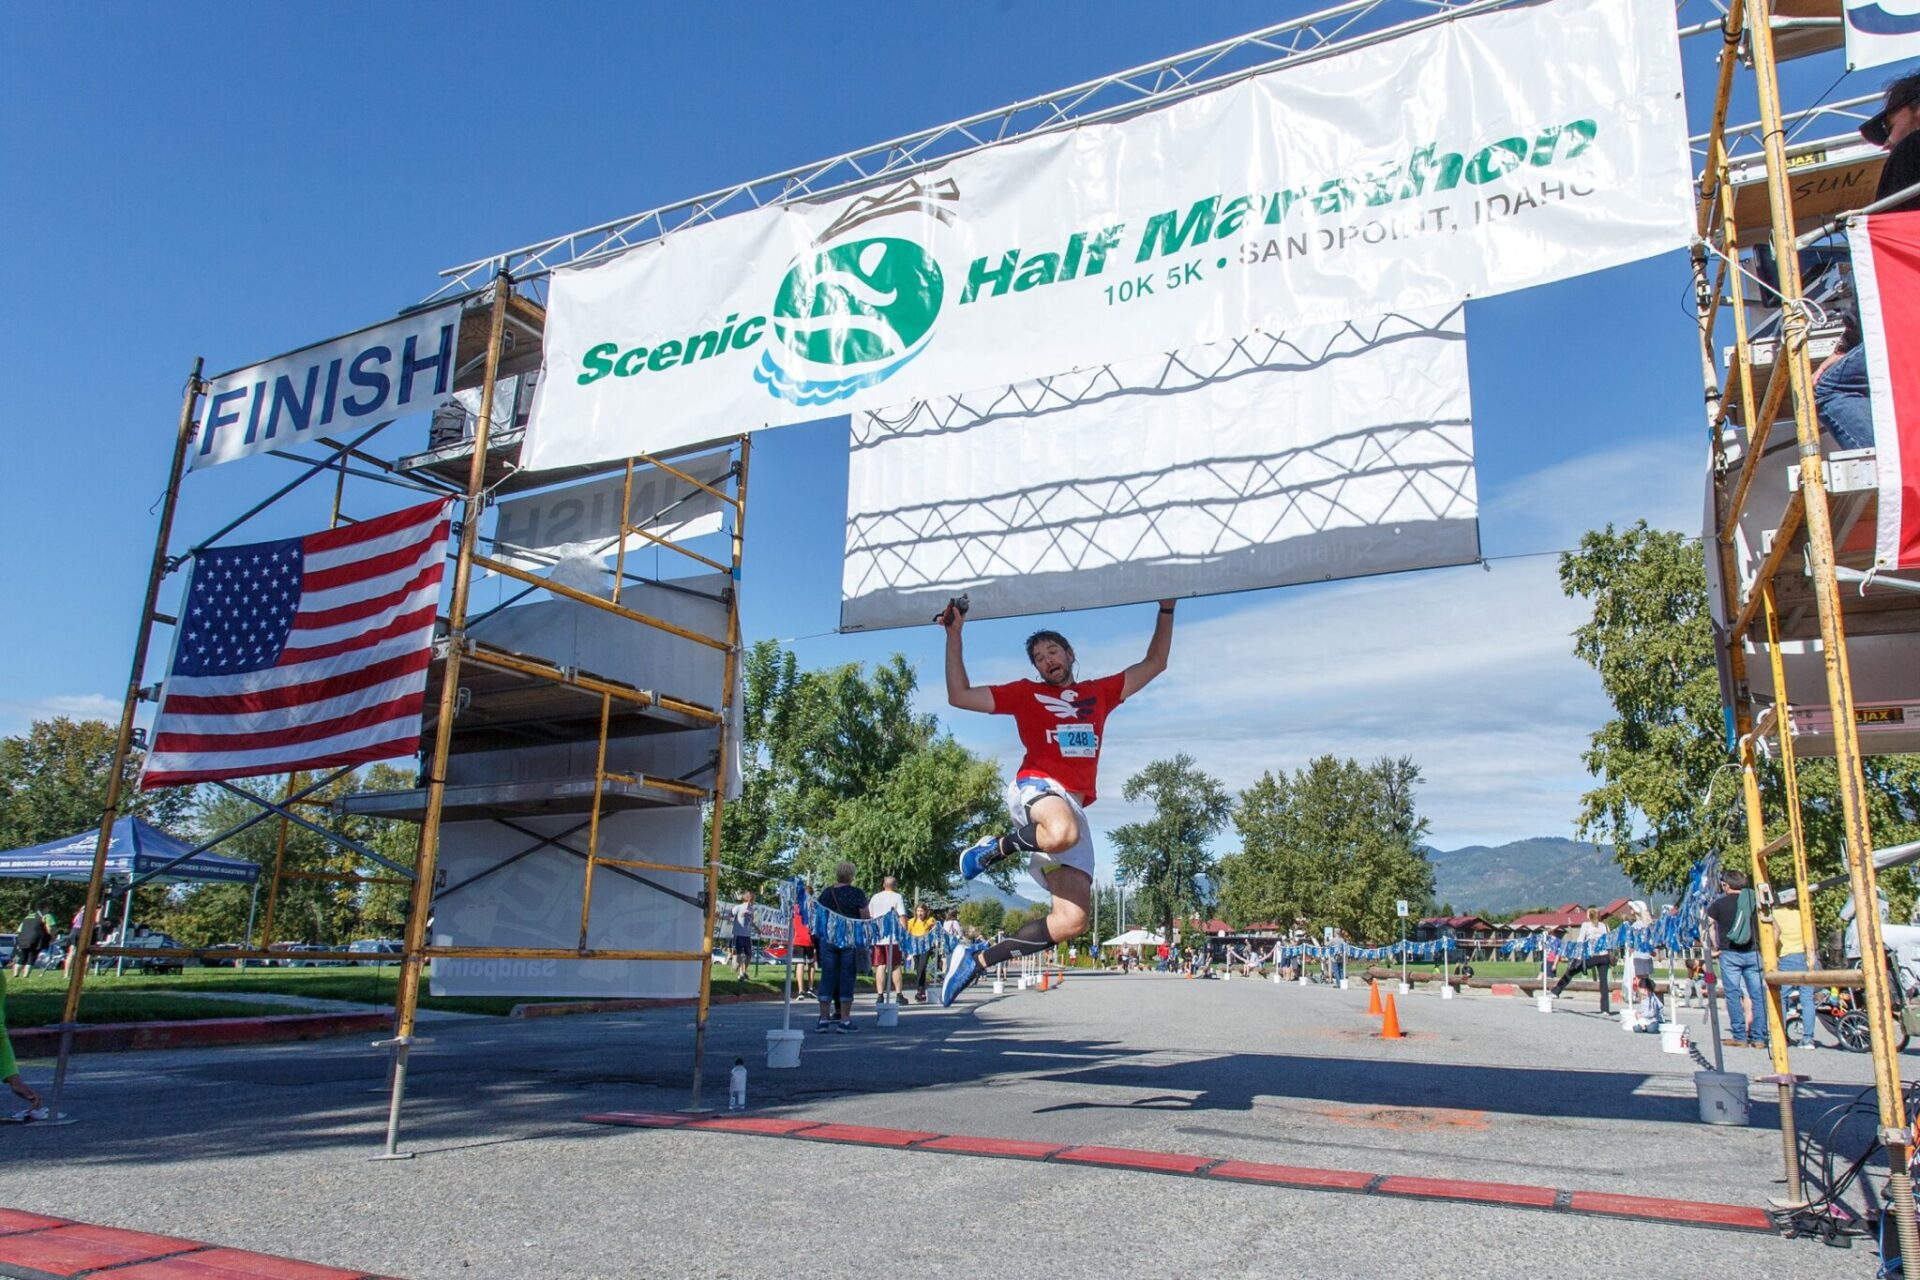 Person jumping over finish line.